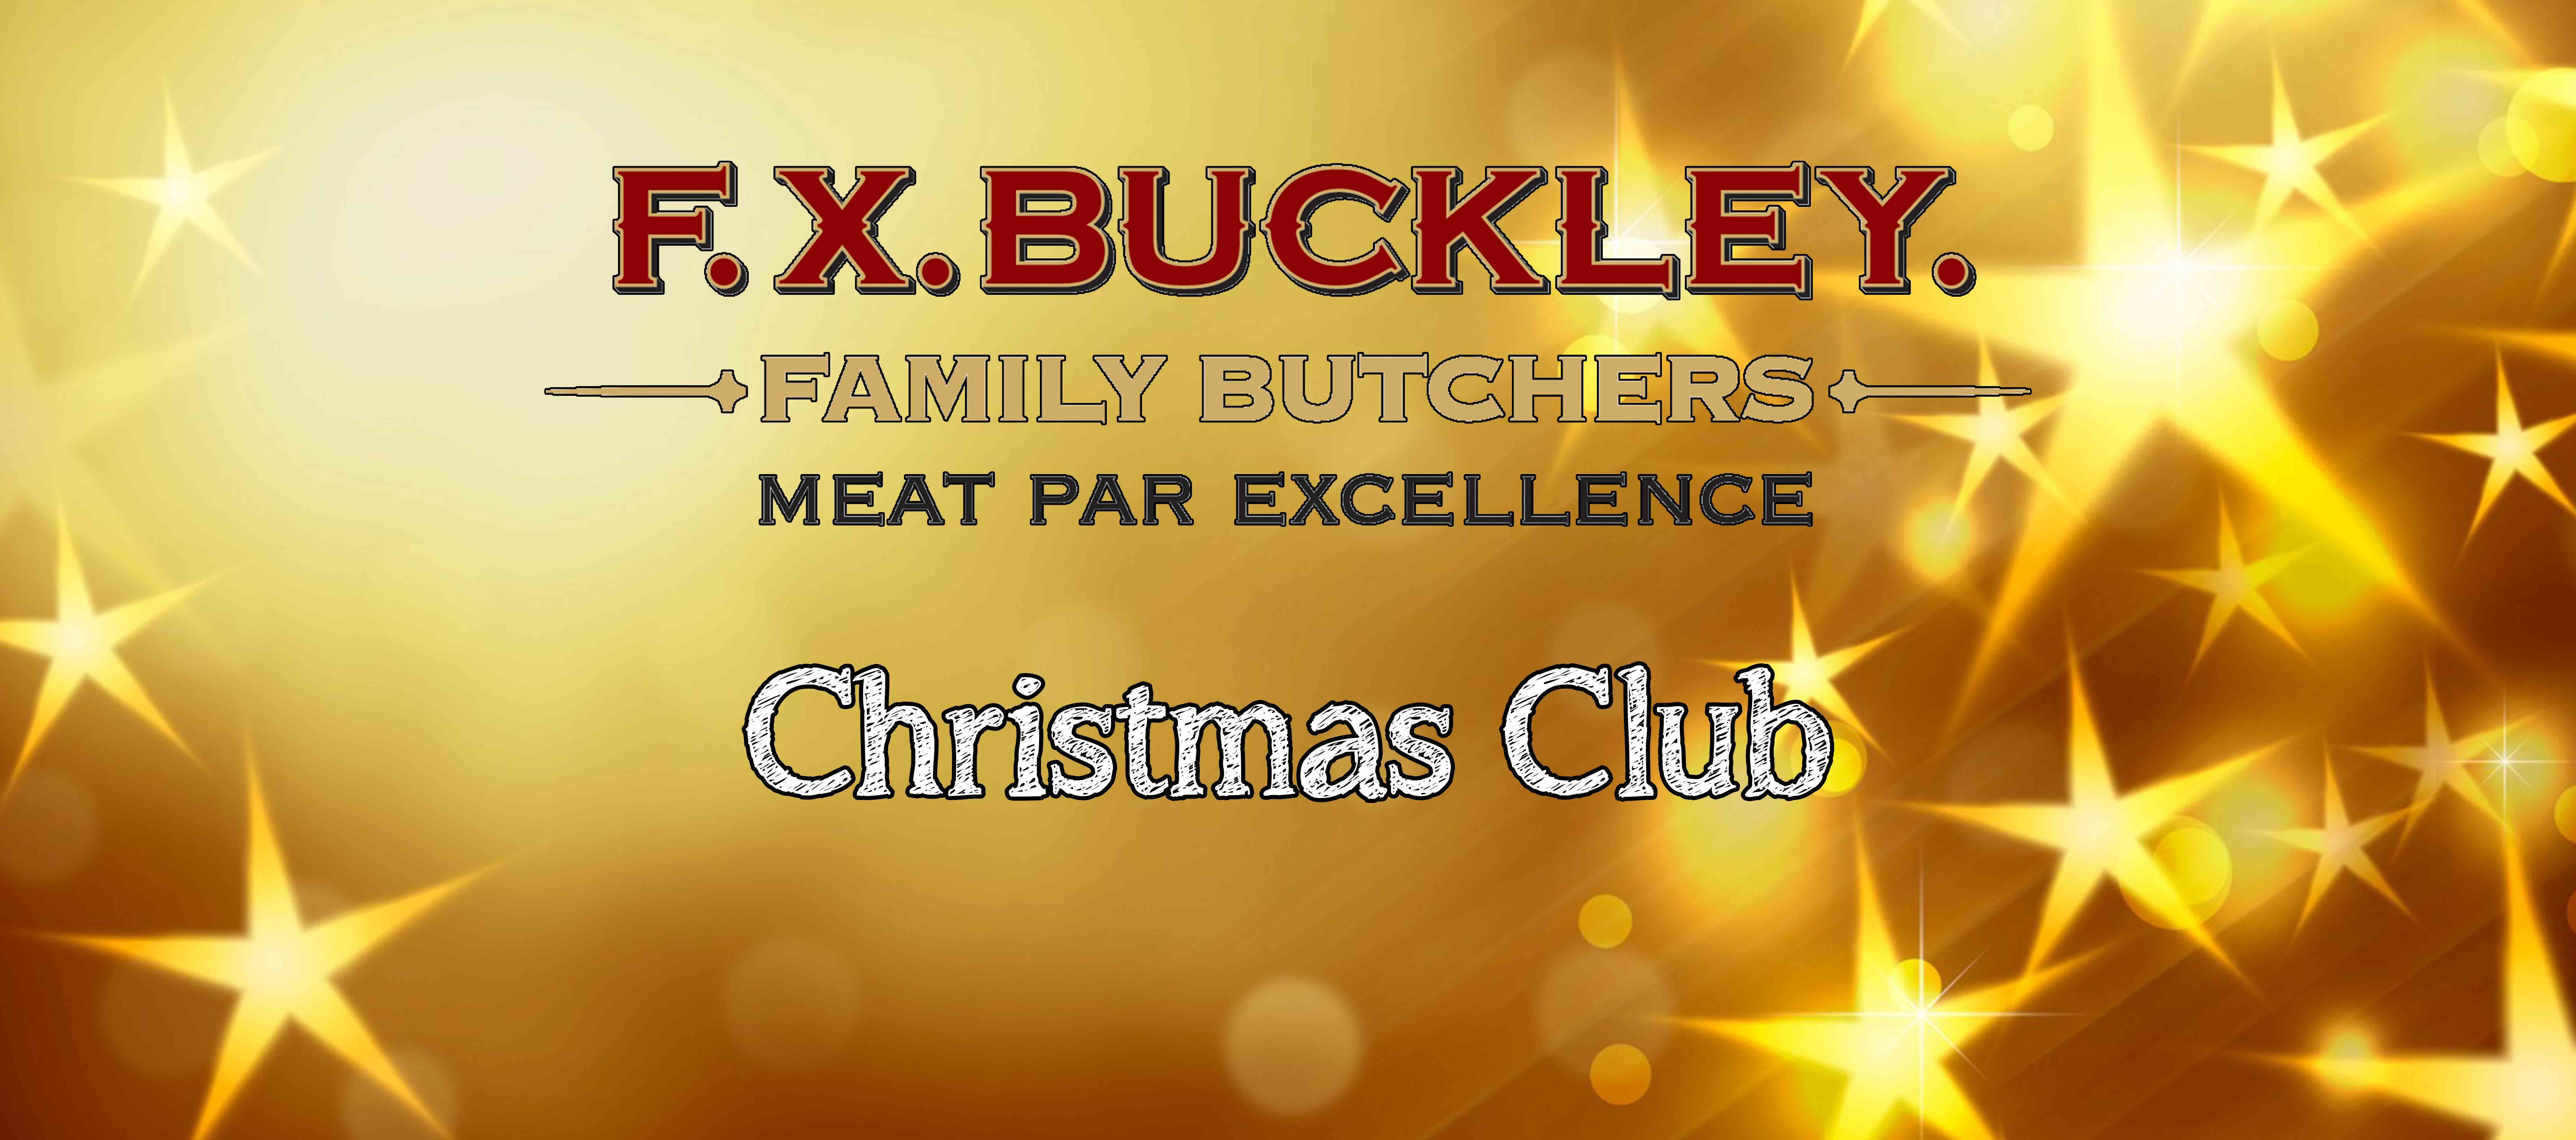 FX Buckley Christmas Club